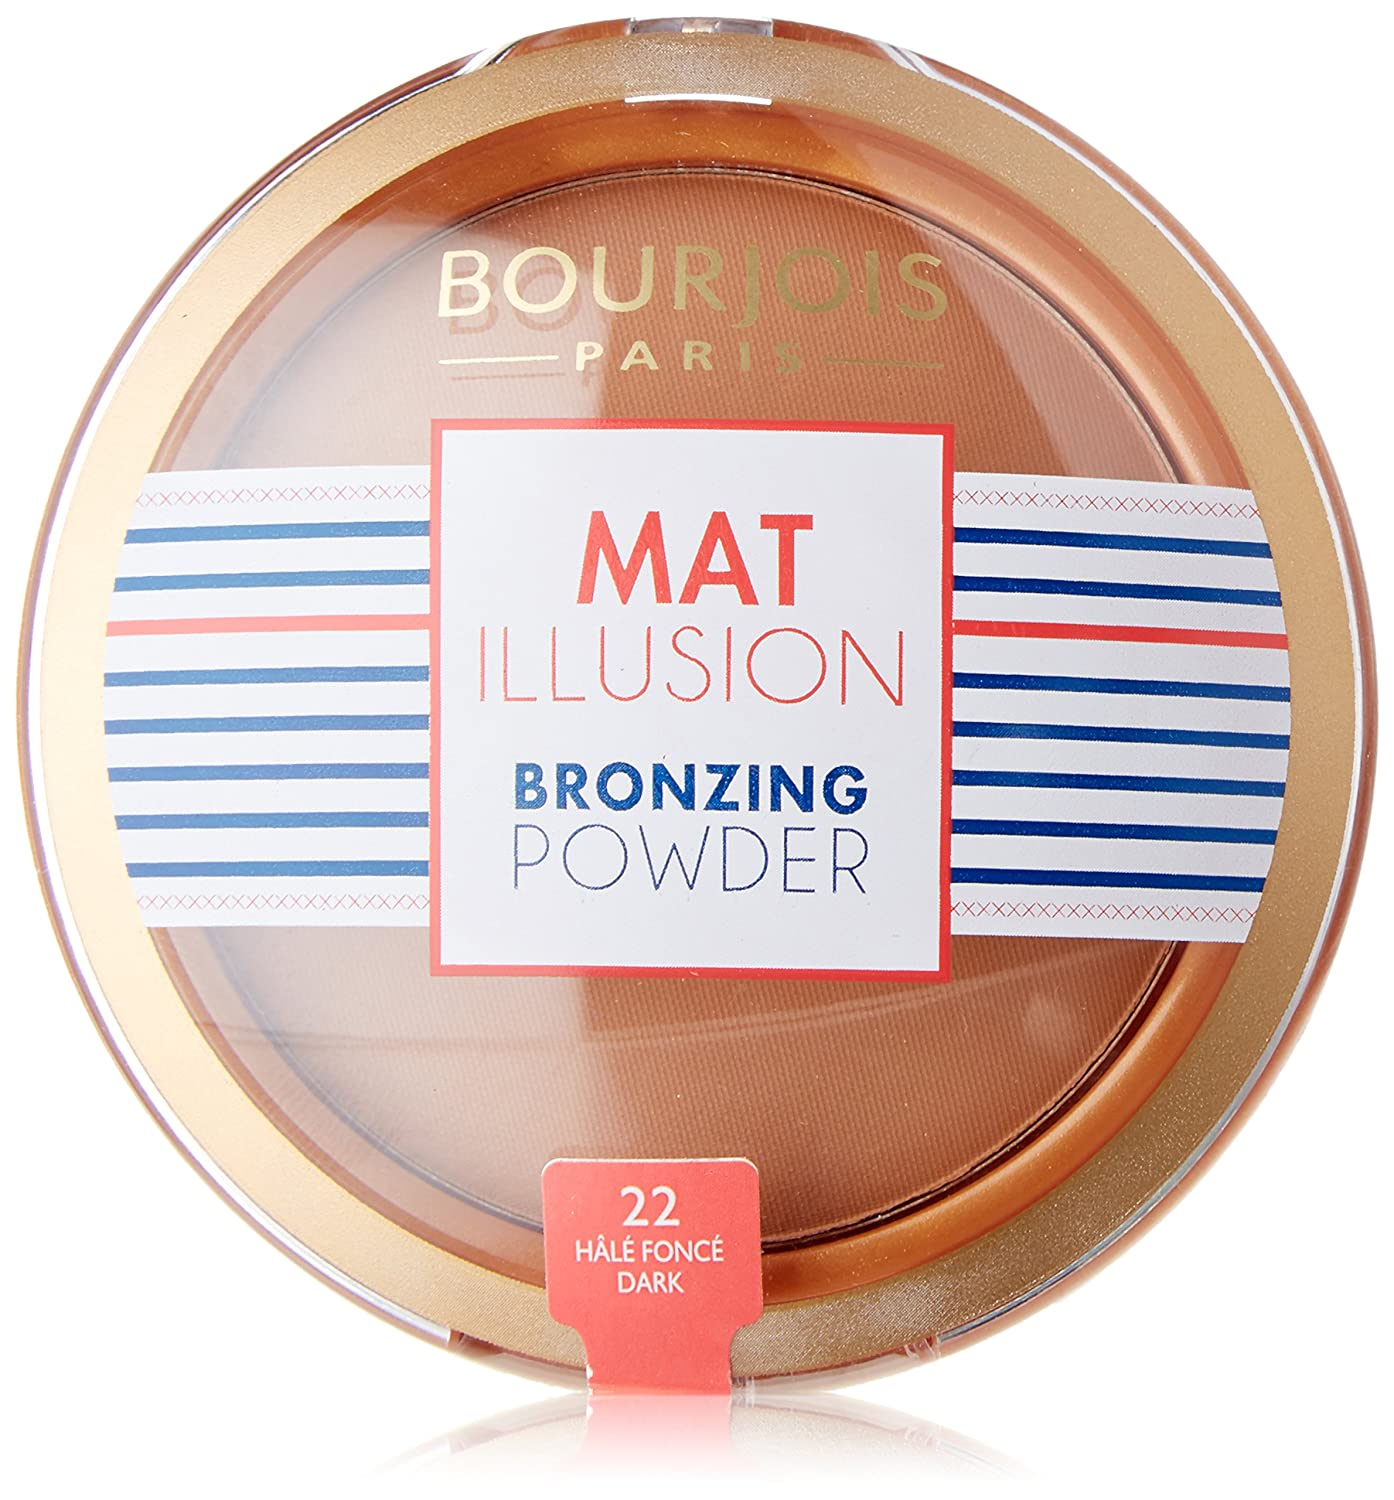 Bourjois Mat Illusion Bronzing Powder Number 22 Hale Fonce Coty 29102598022